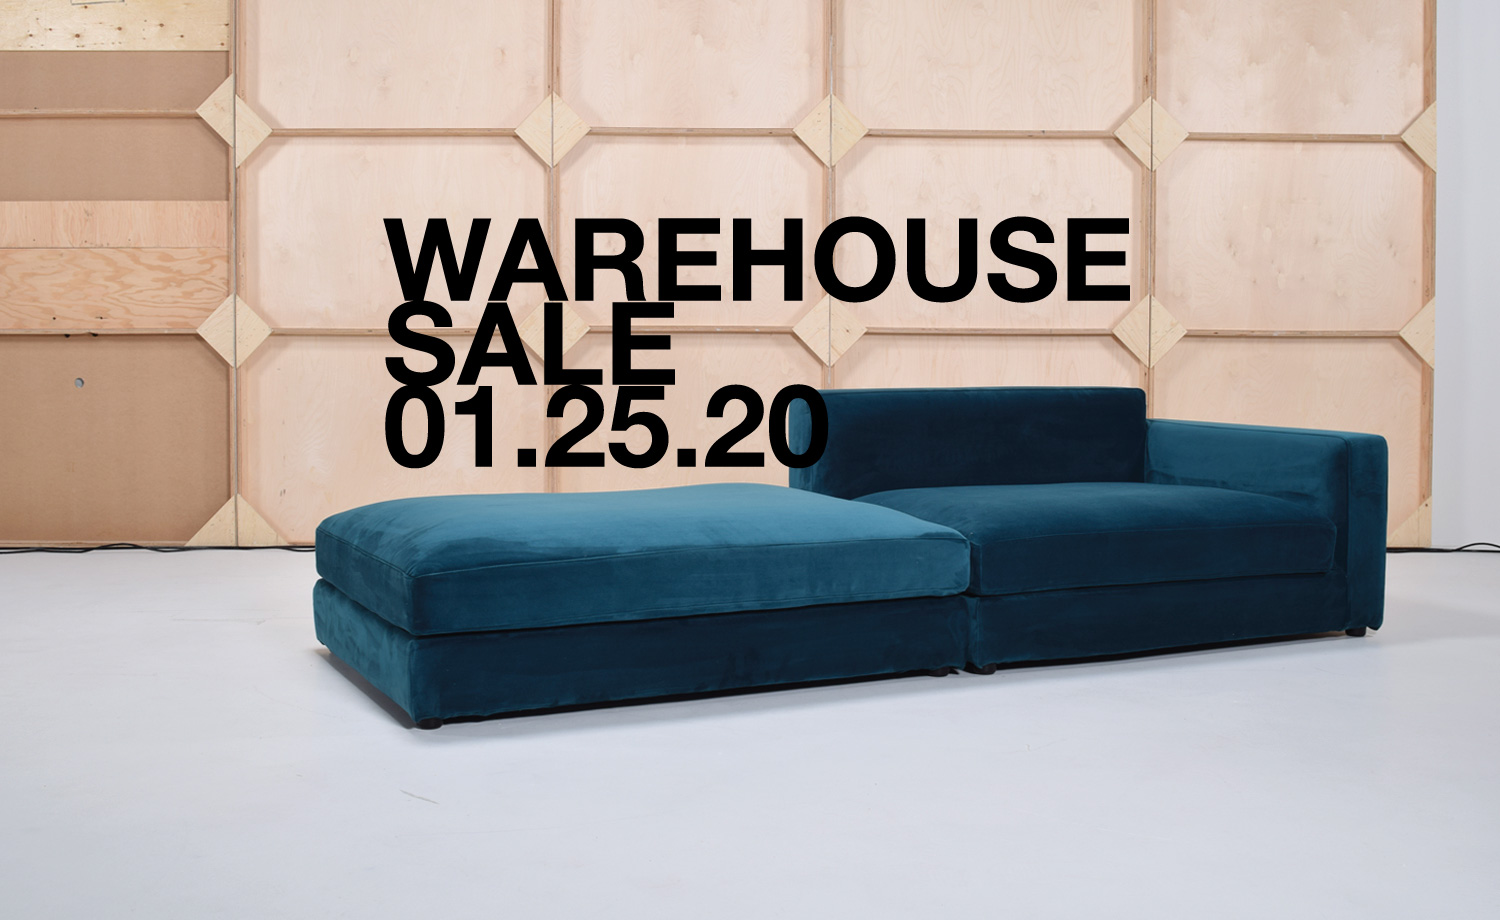 edb's annual warehouse sale